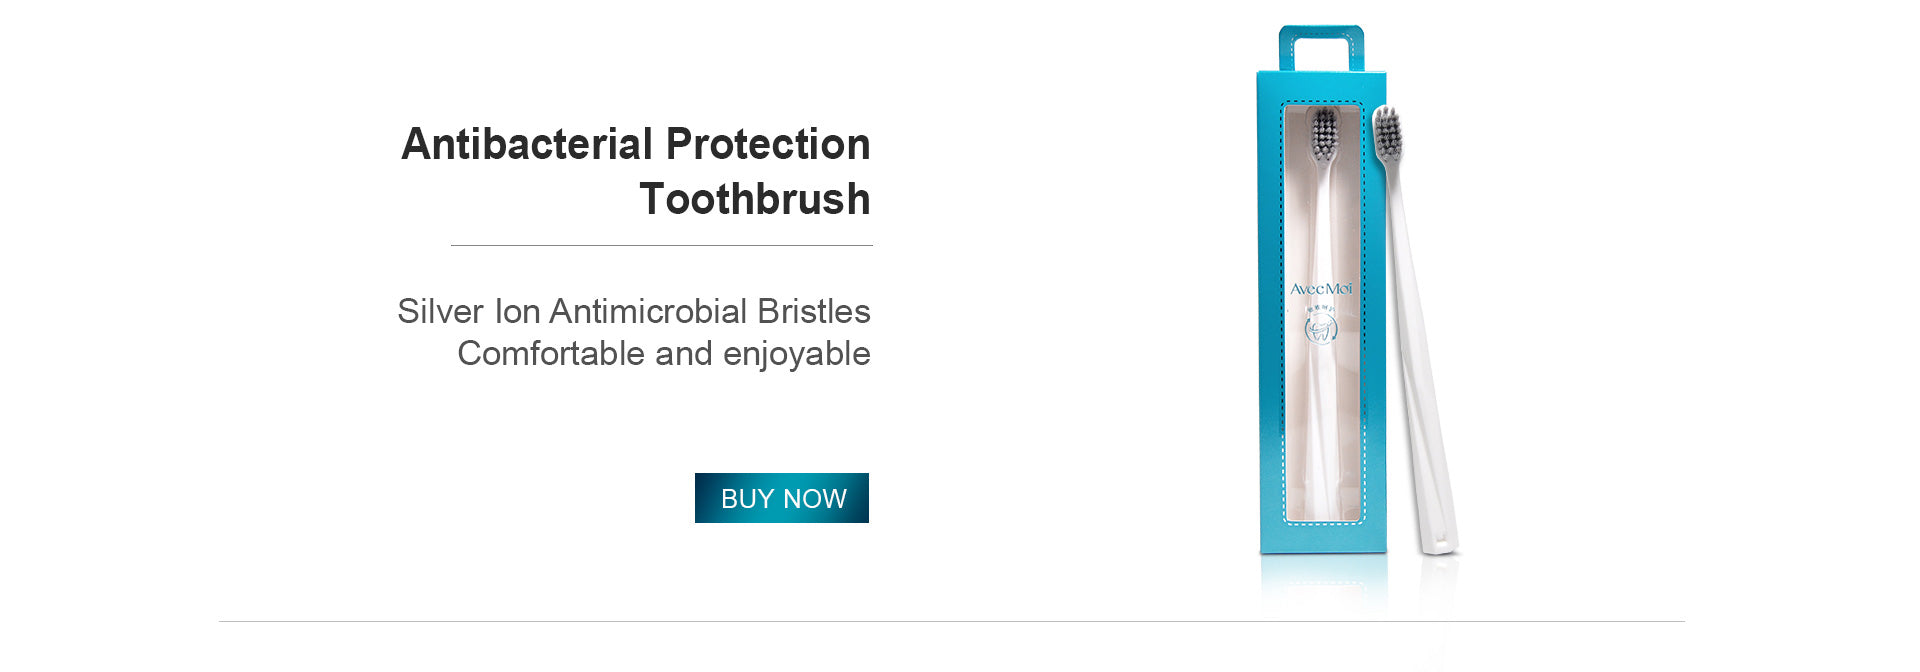 Avec Moi Antibacterial Protection Toothbrush